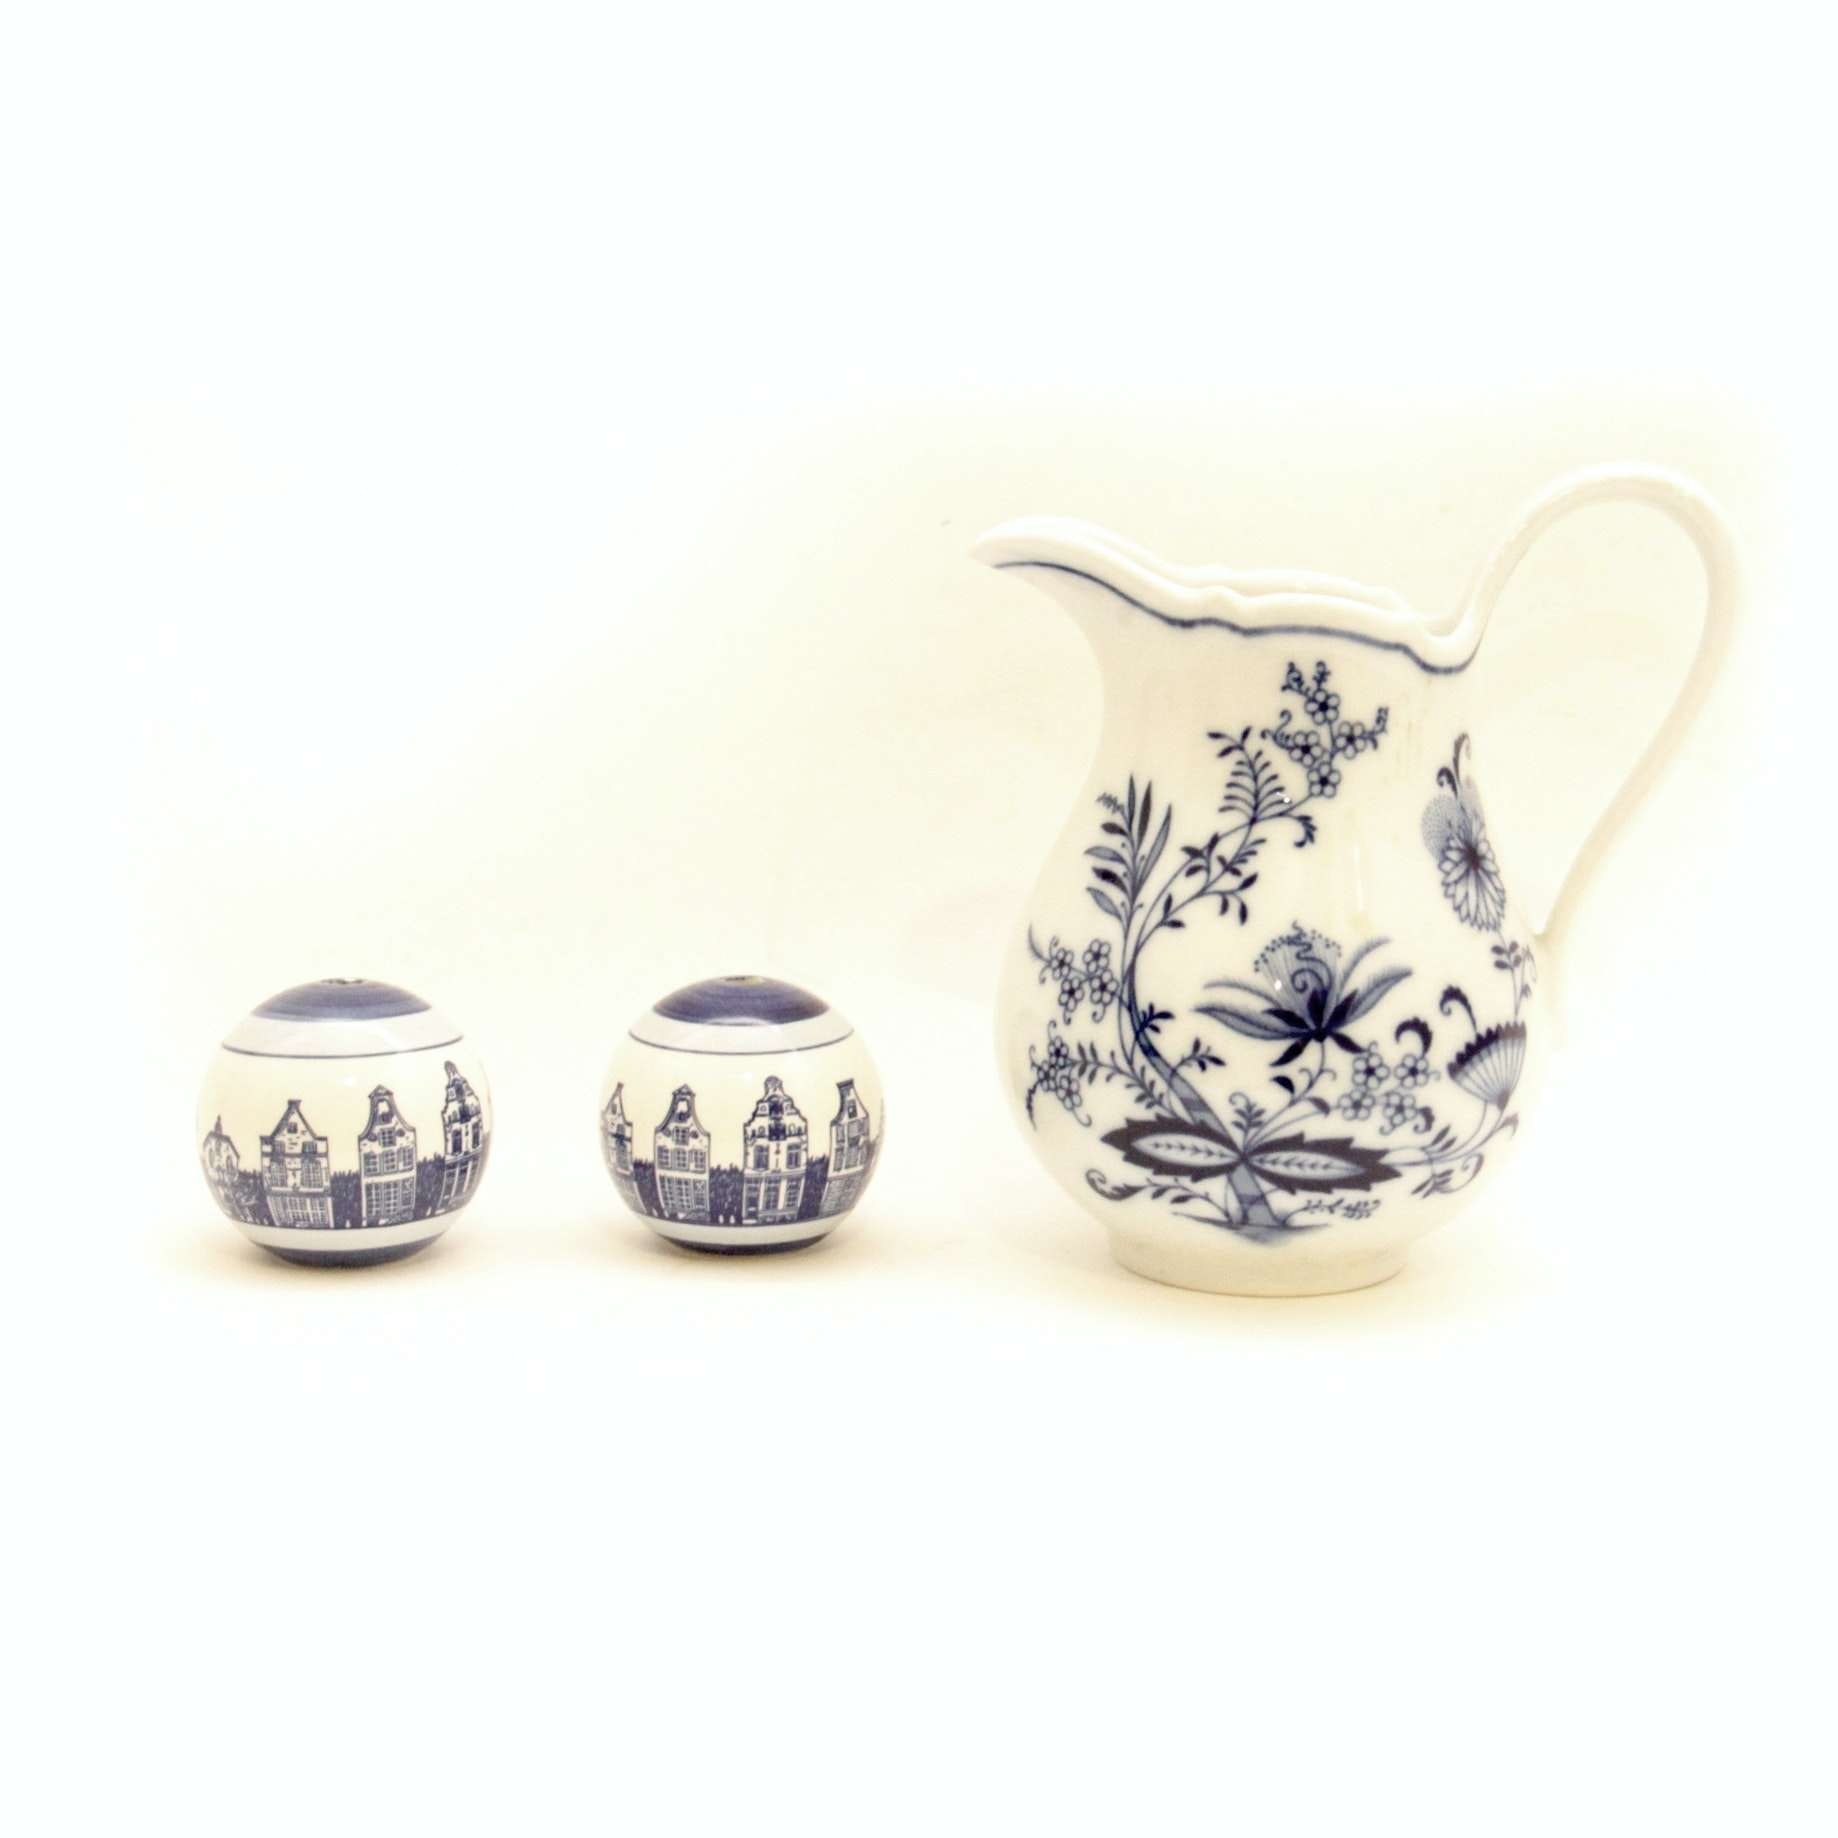 Delftware Salt and Pepper Shaker and Bavarian Porcelain Pitcher